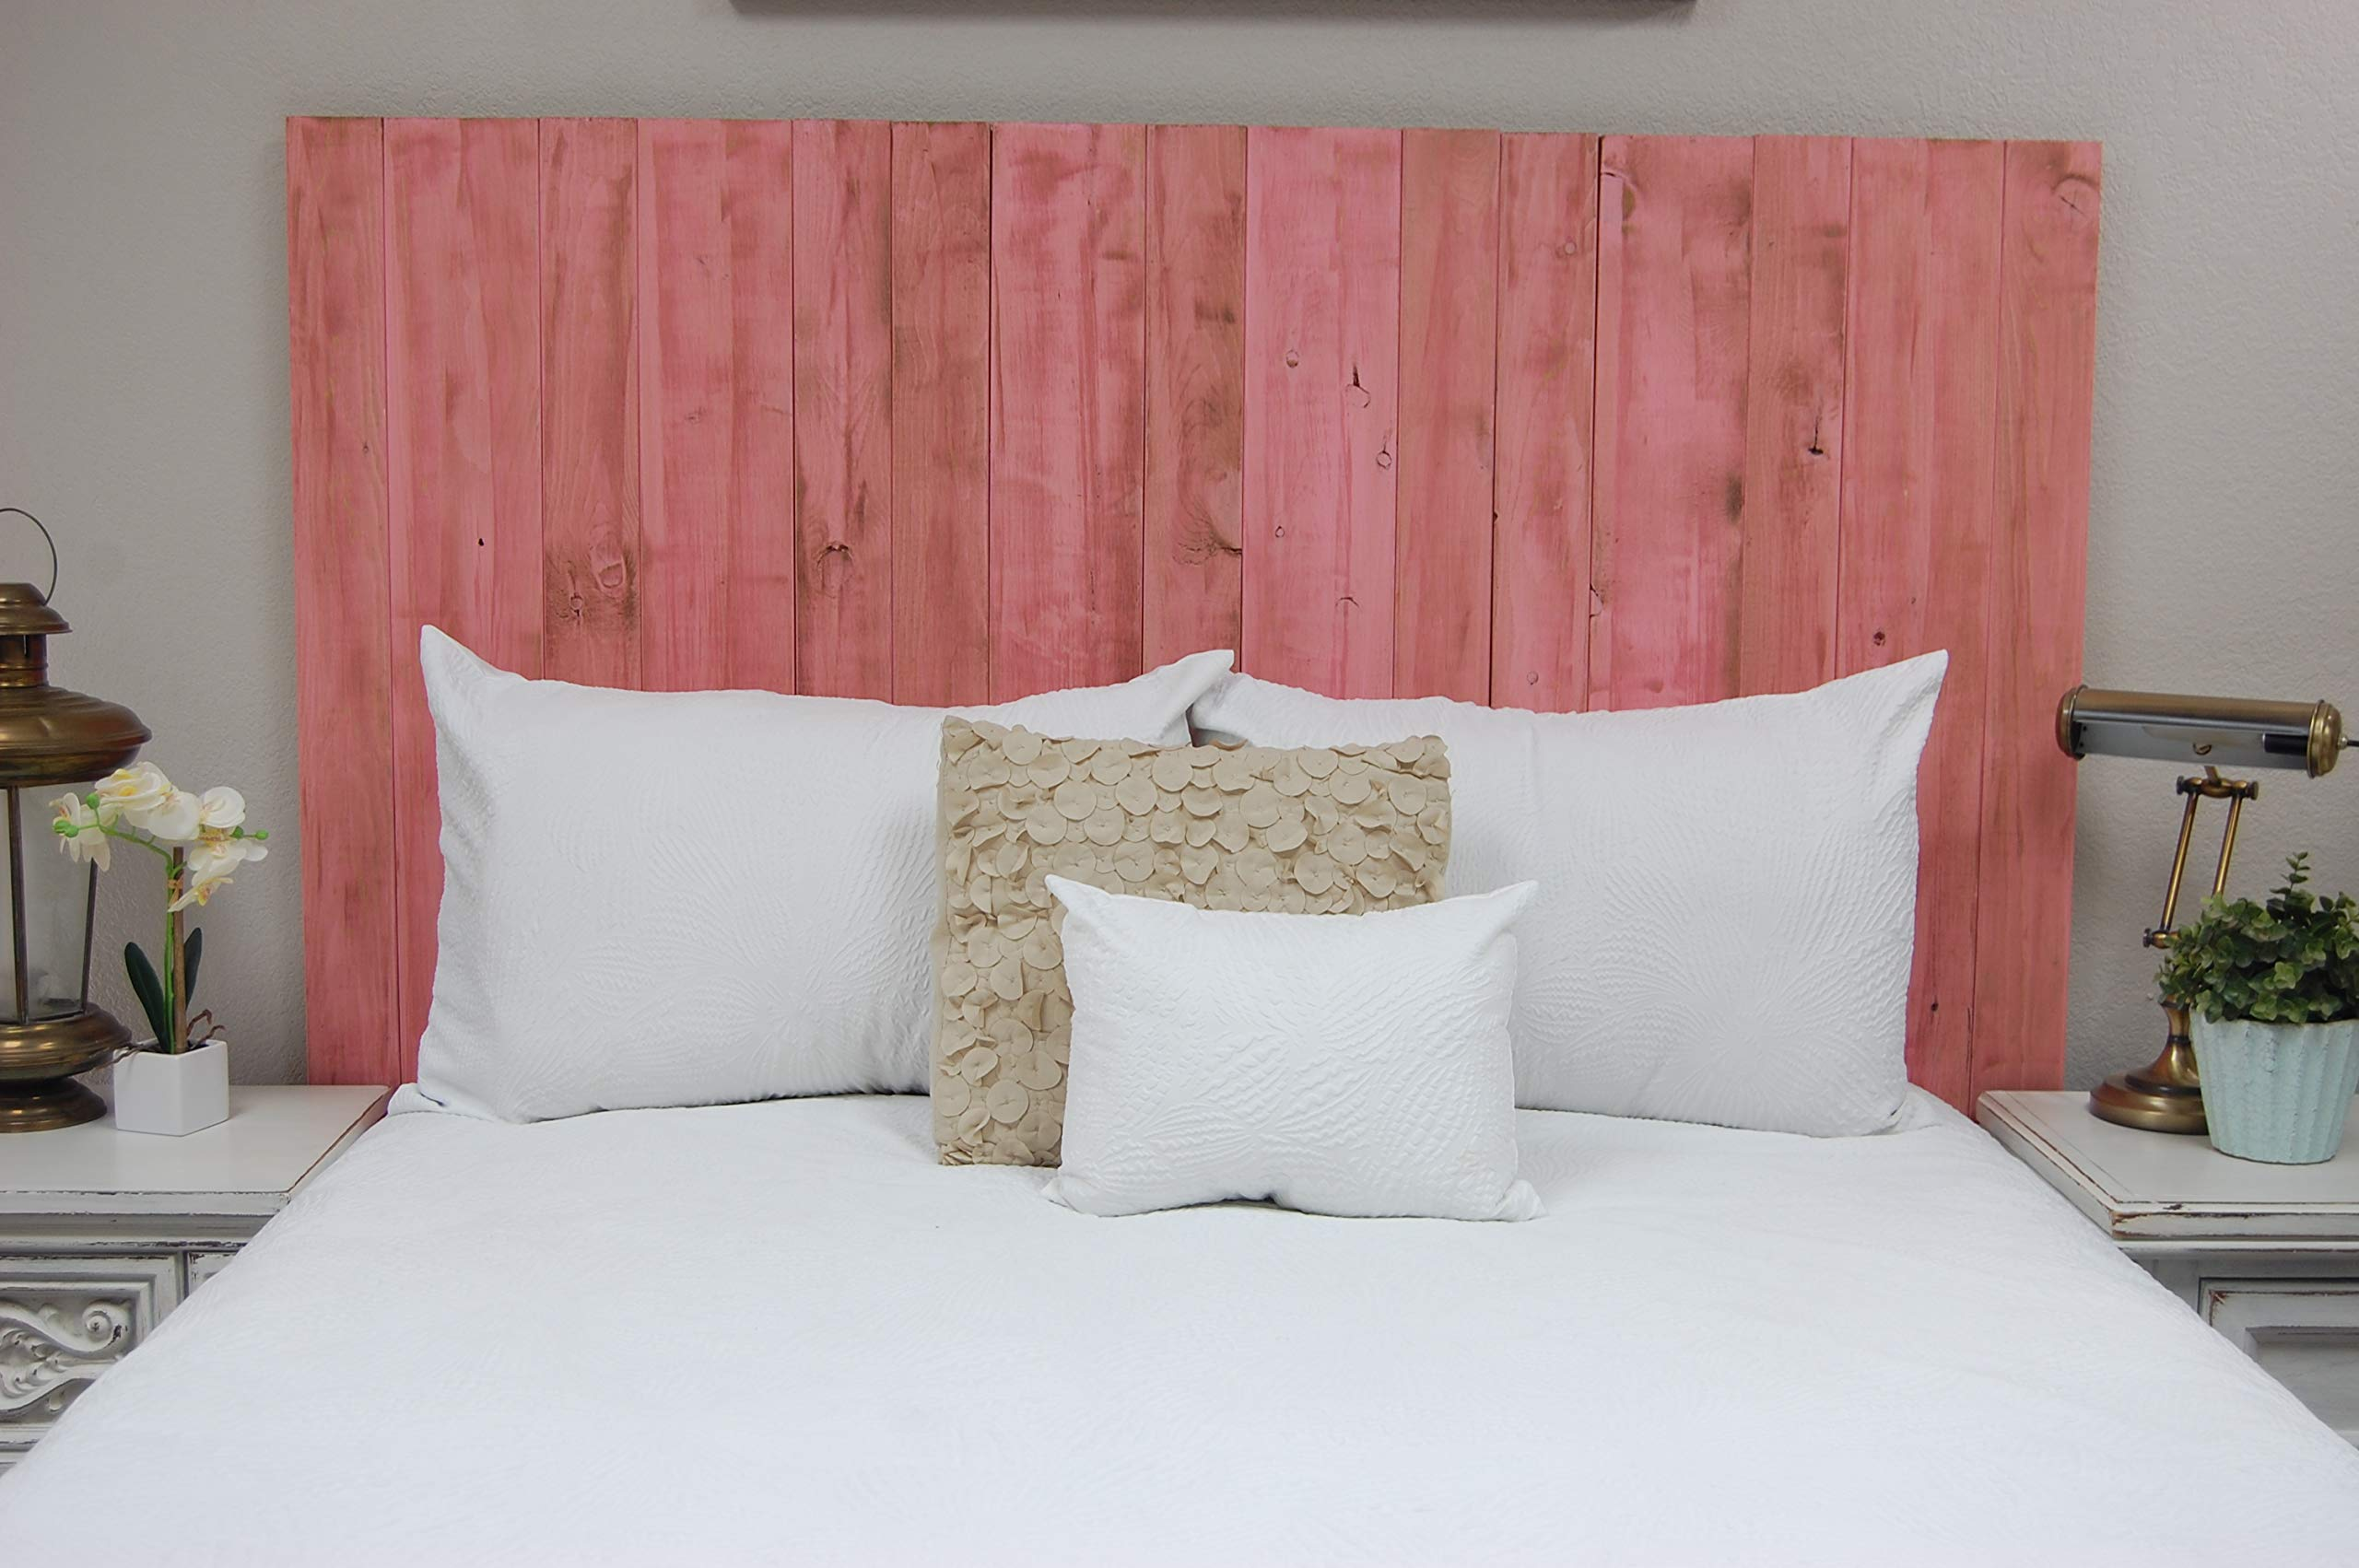 Pink Headboard Weathered California King Size, Hanger Style, Handcrafted. Mounts on Wall. Easy Installation